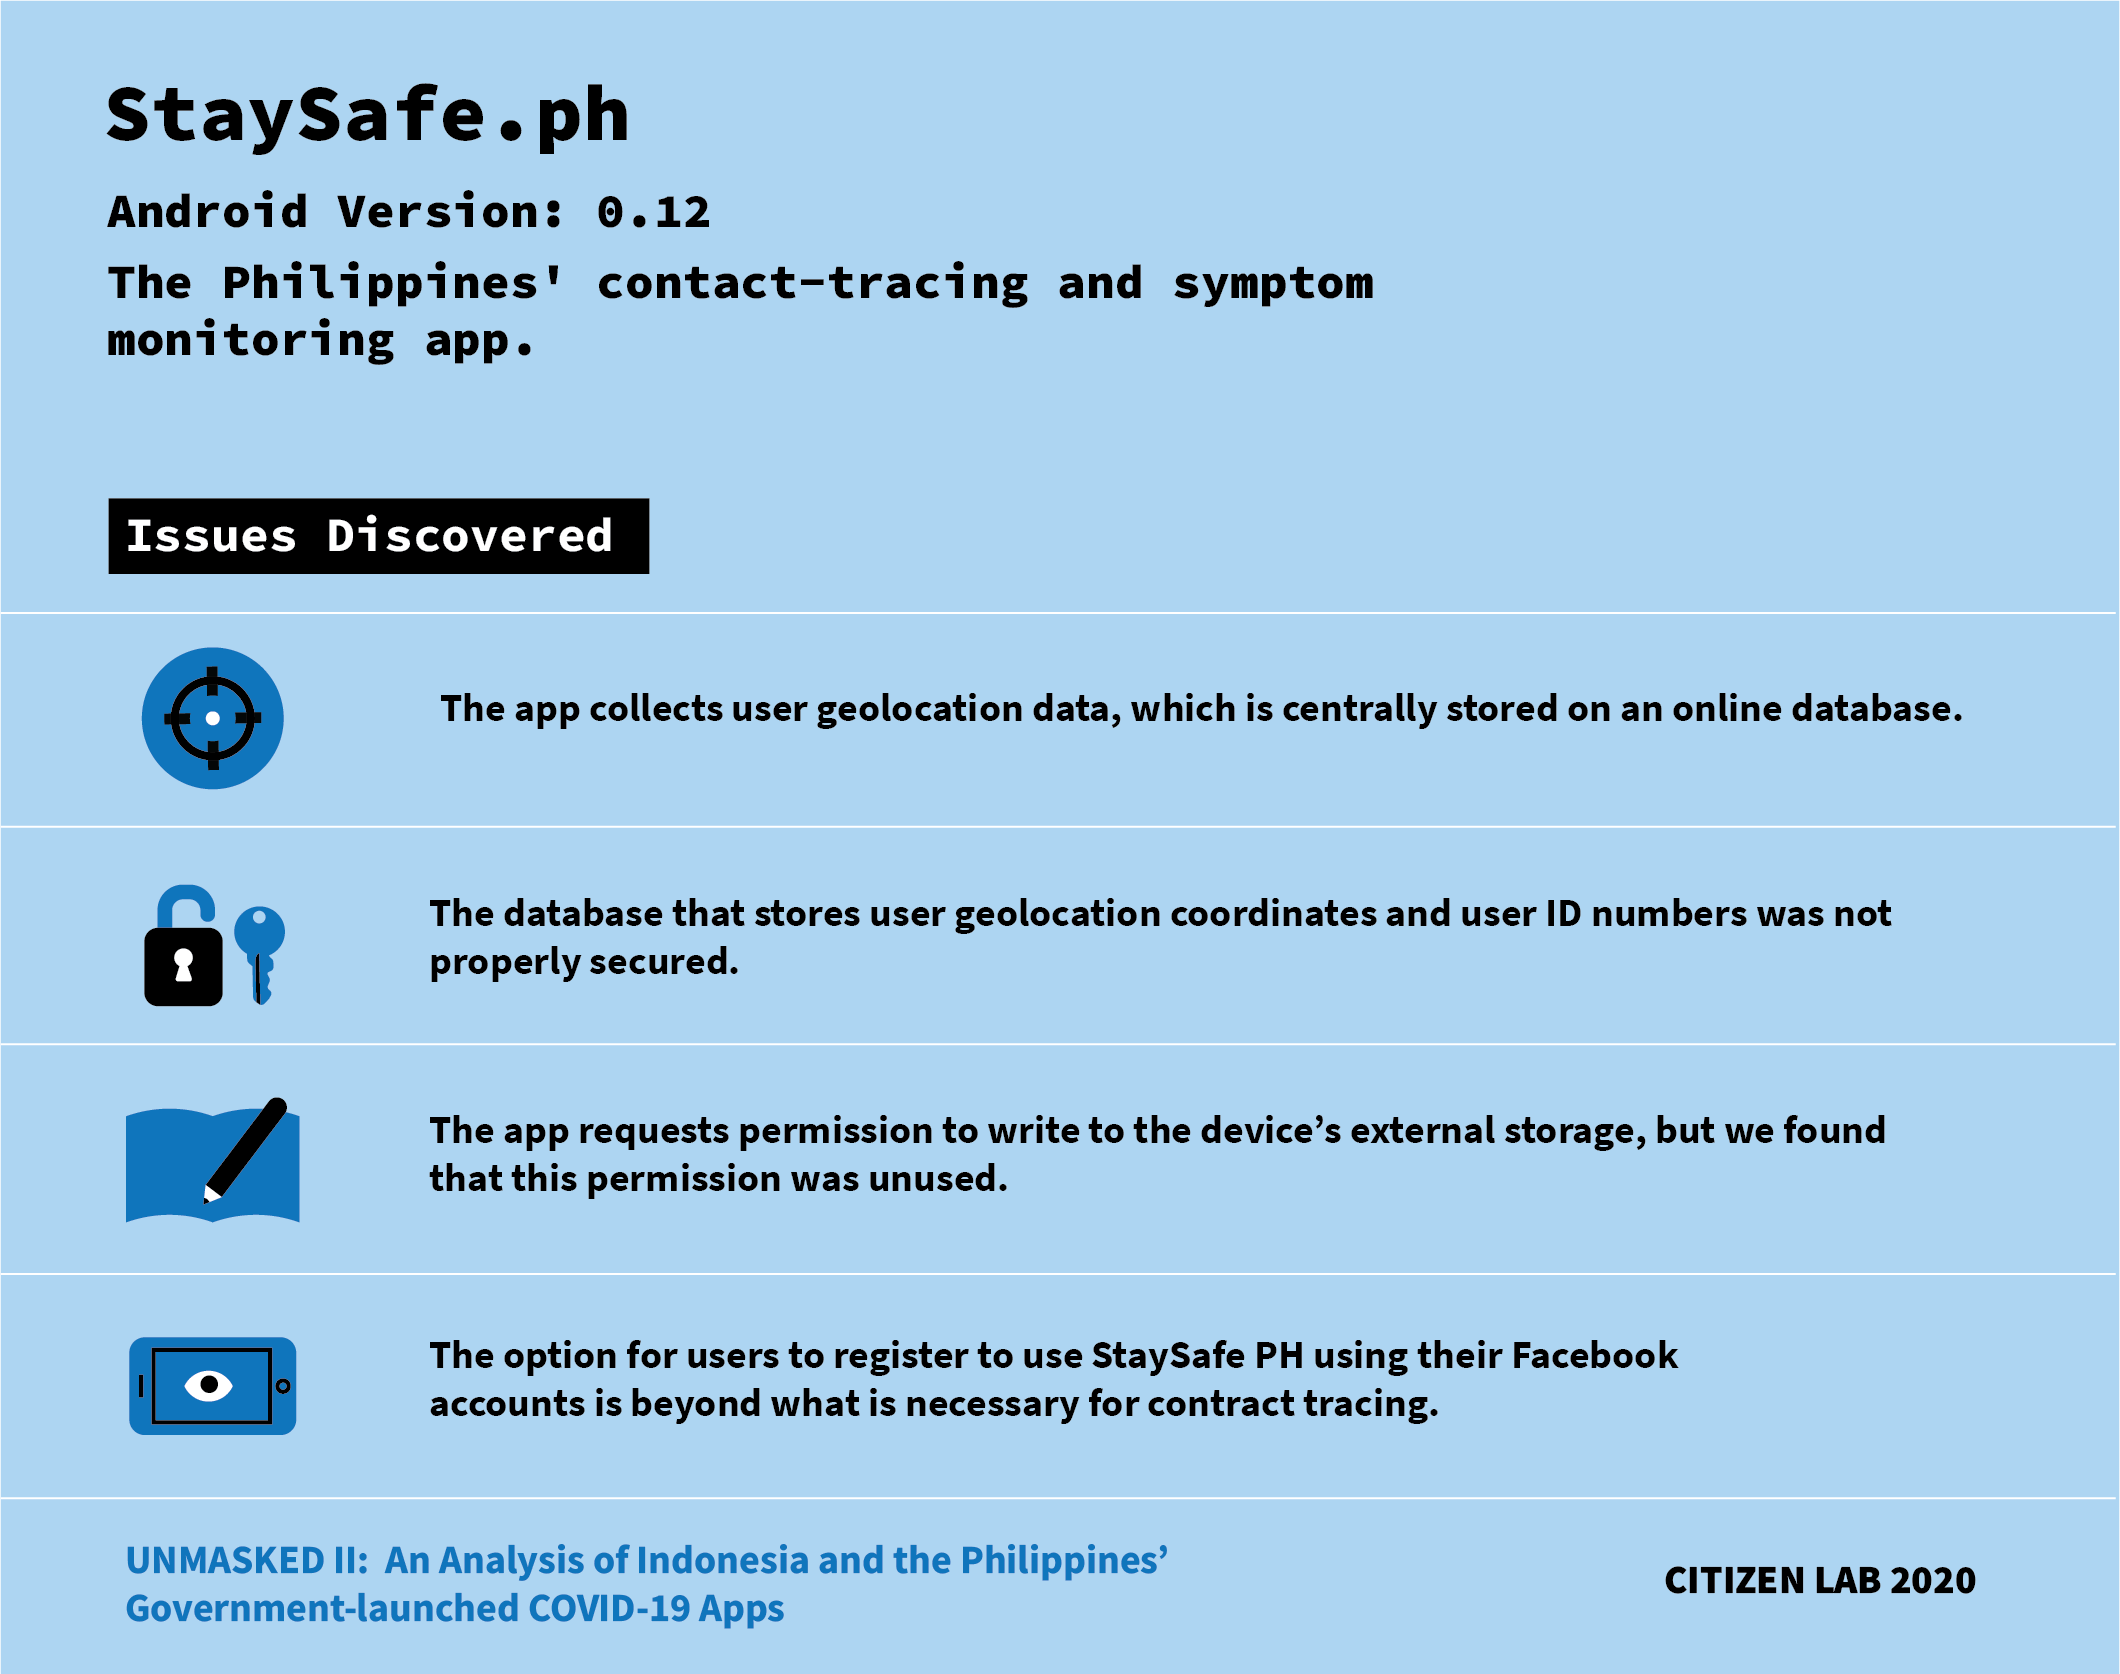 List of issues discovered on the COVID-19 app StaySafe.Ph